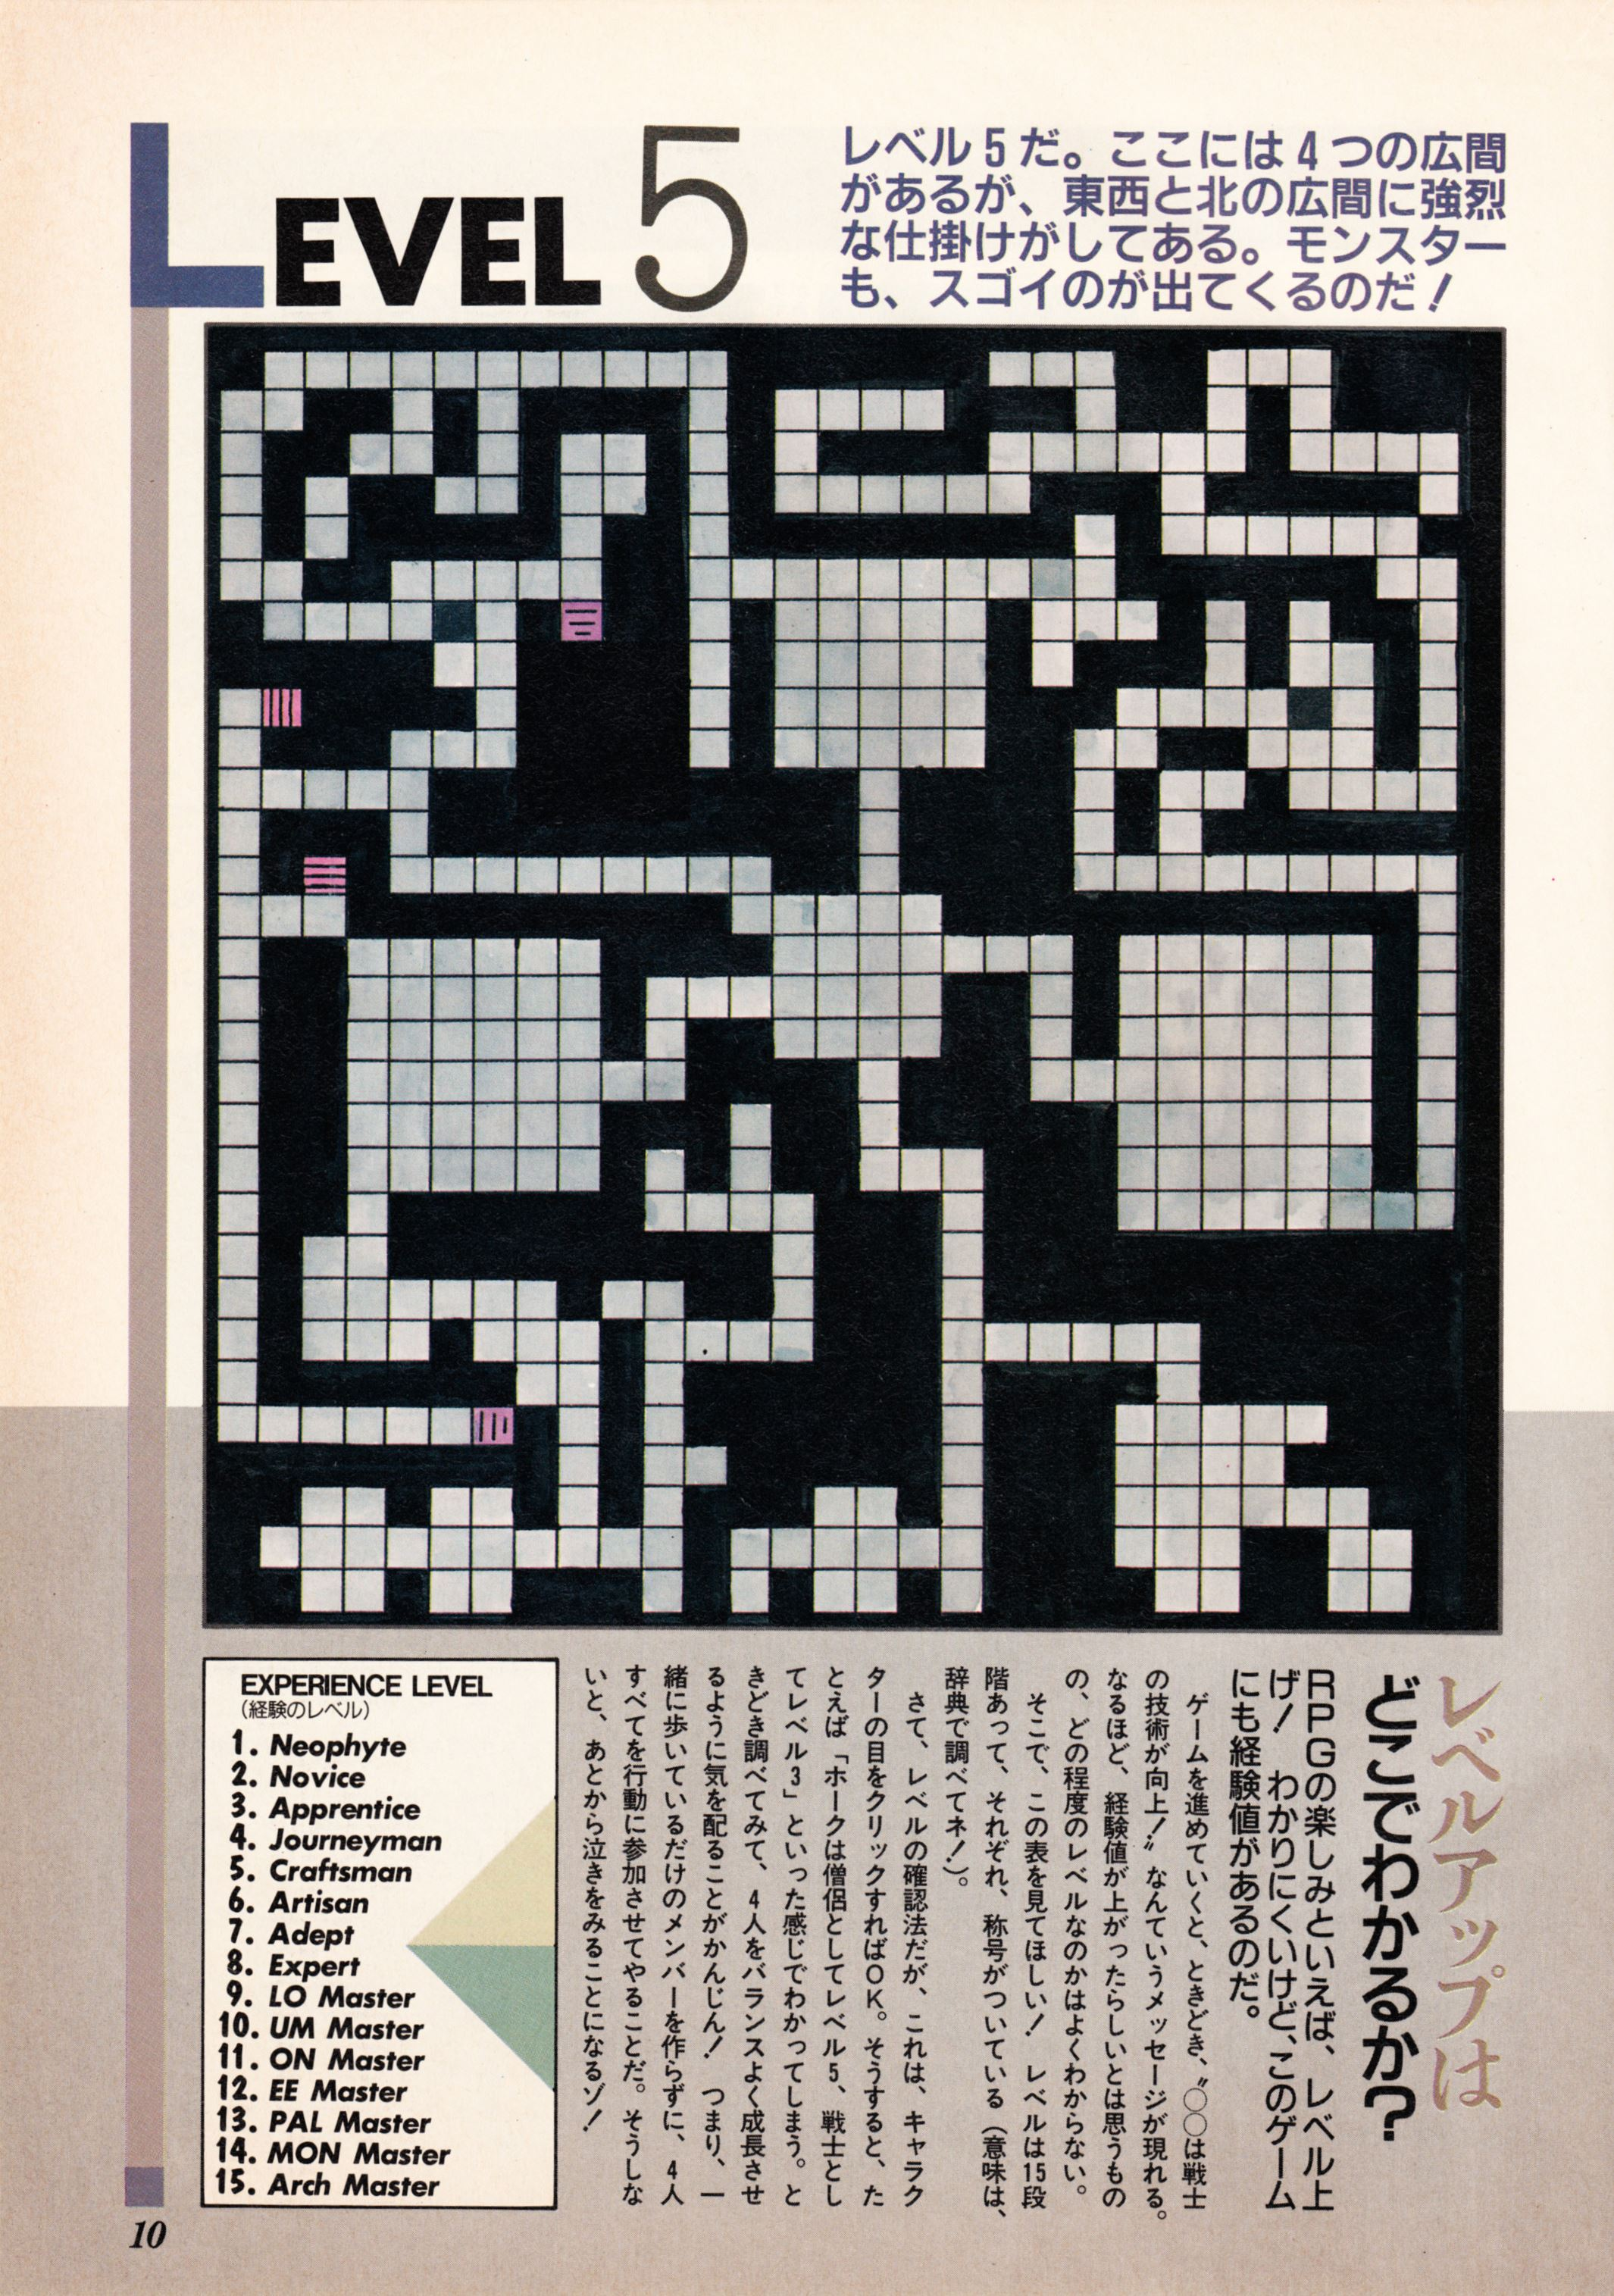 Supplement - Dungeon Master Companion Manual Guide published in Japanese magazine 'Popcom', Vol 4 No 1 01 April 1990, Page 12